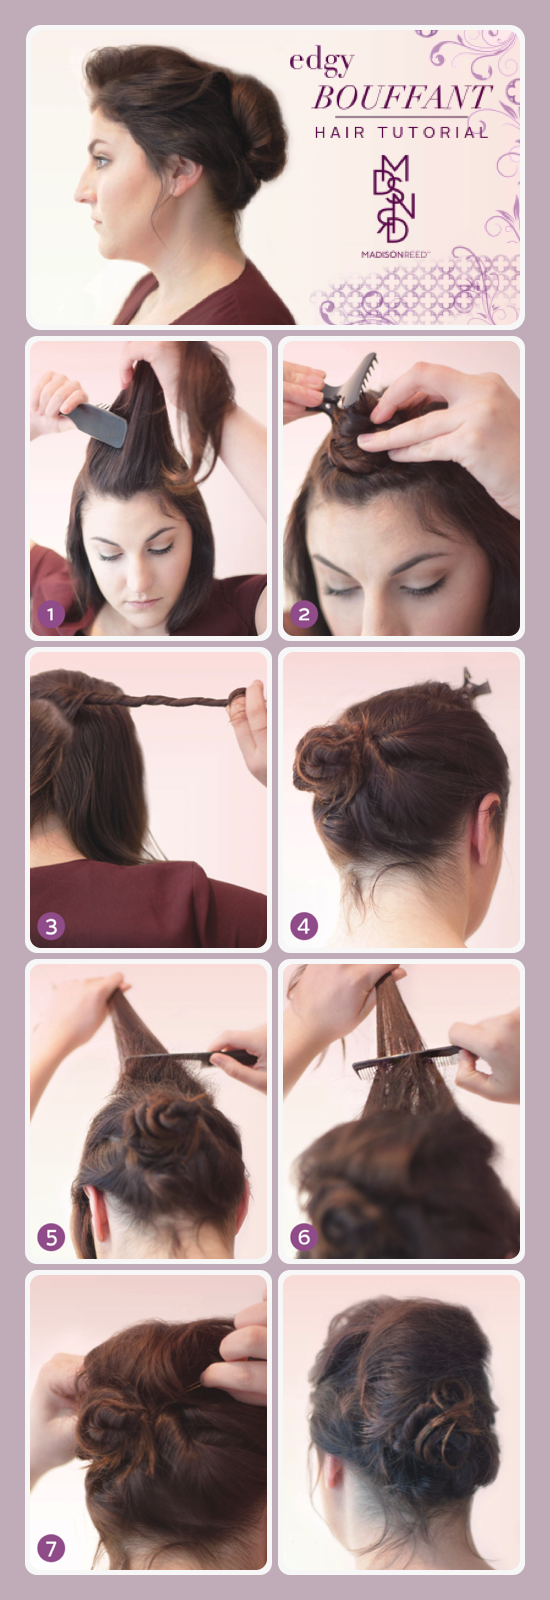 bouffant hair tutorial steps